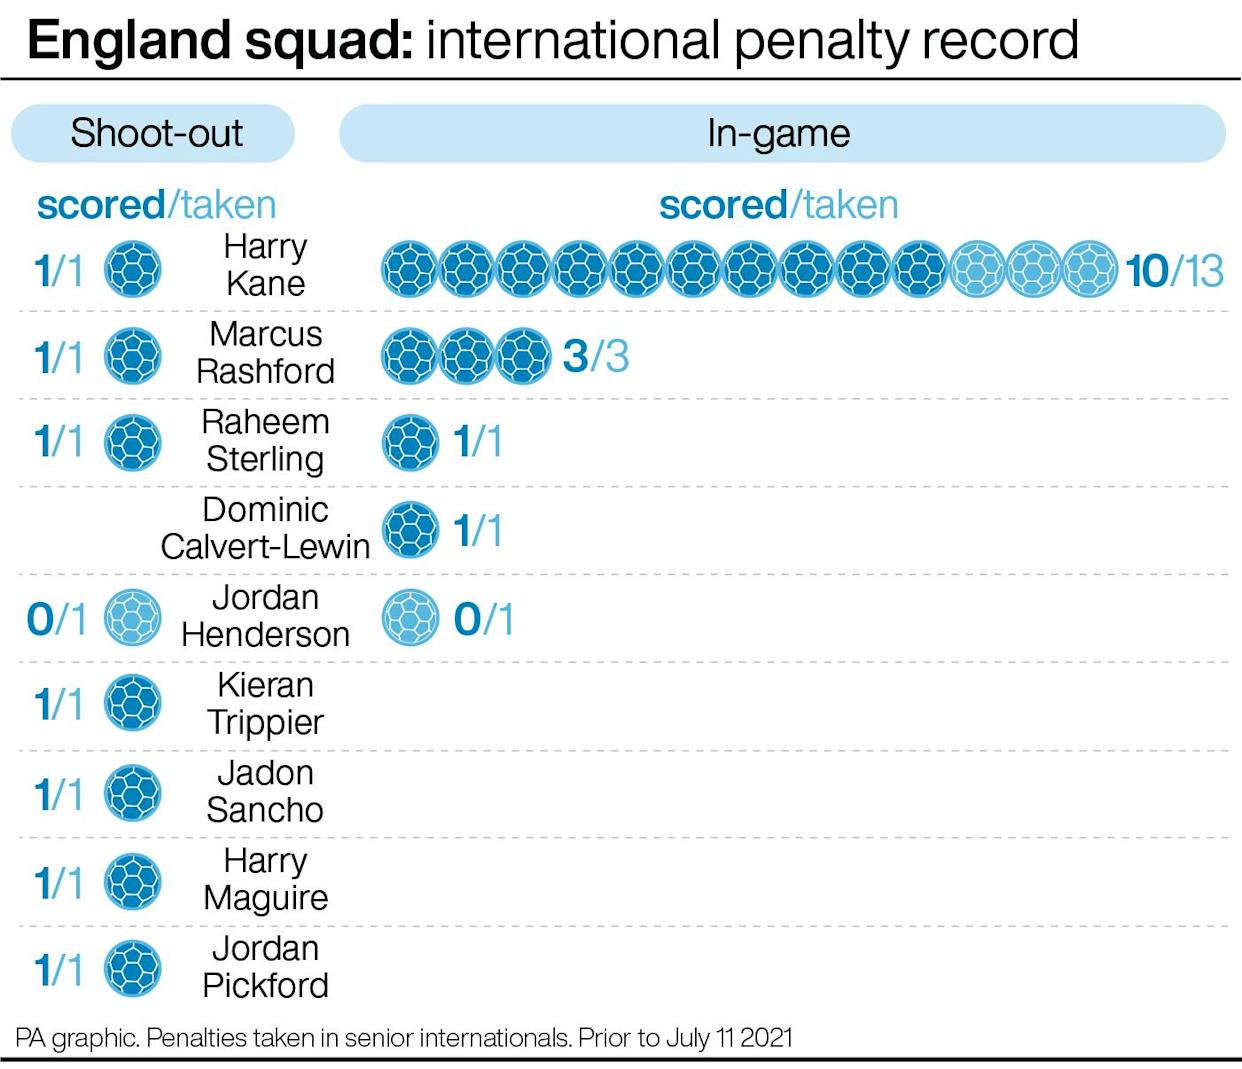 England's record from penalties in senior internationals before the Euro 2020 final (PA graphic)